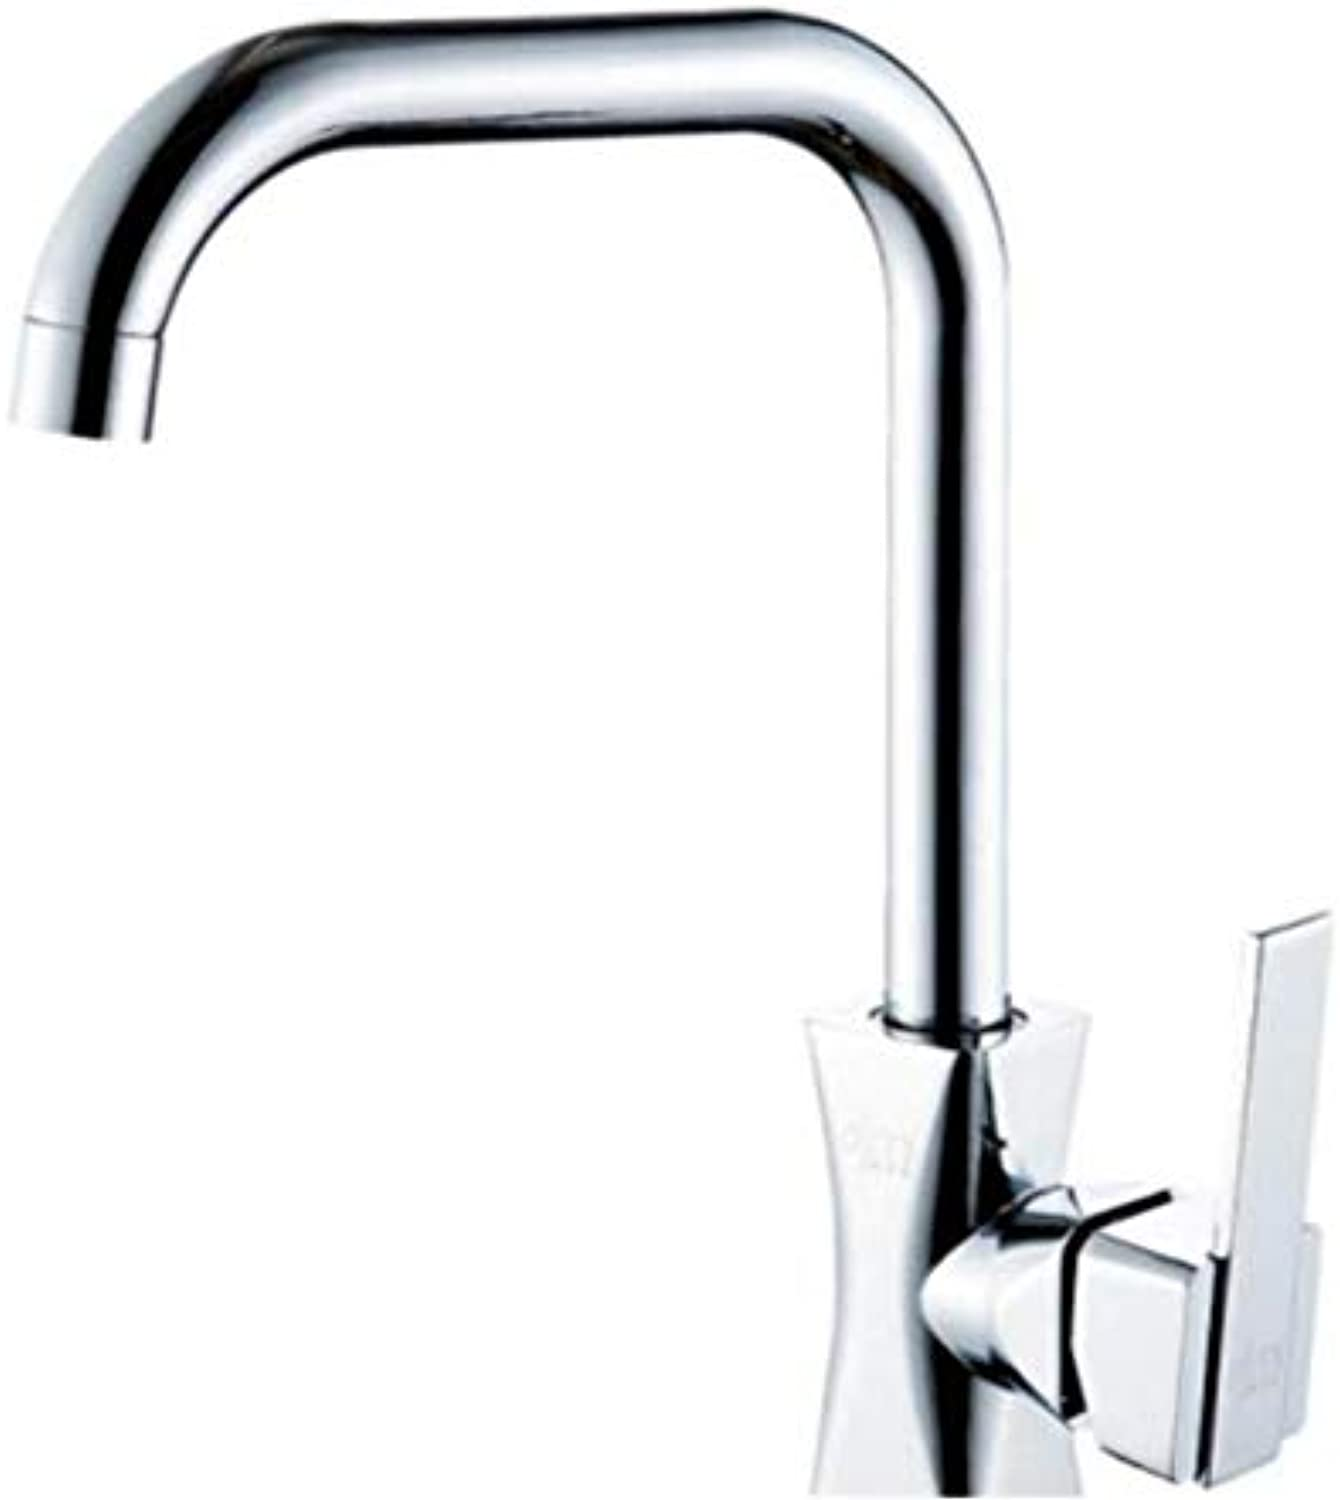 Faucet Lead-Free Square Innovationkitchen Sink Faucet Sink Faucet redatable Hot and Cold Water Faucet